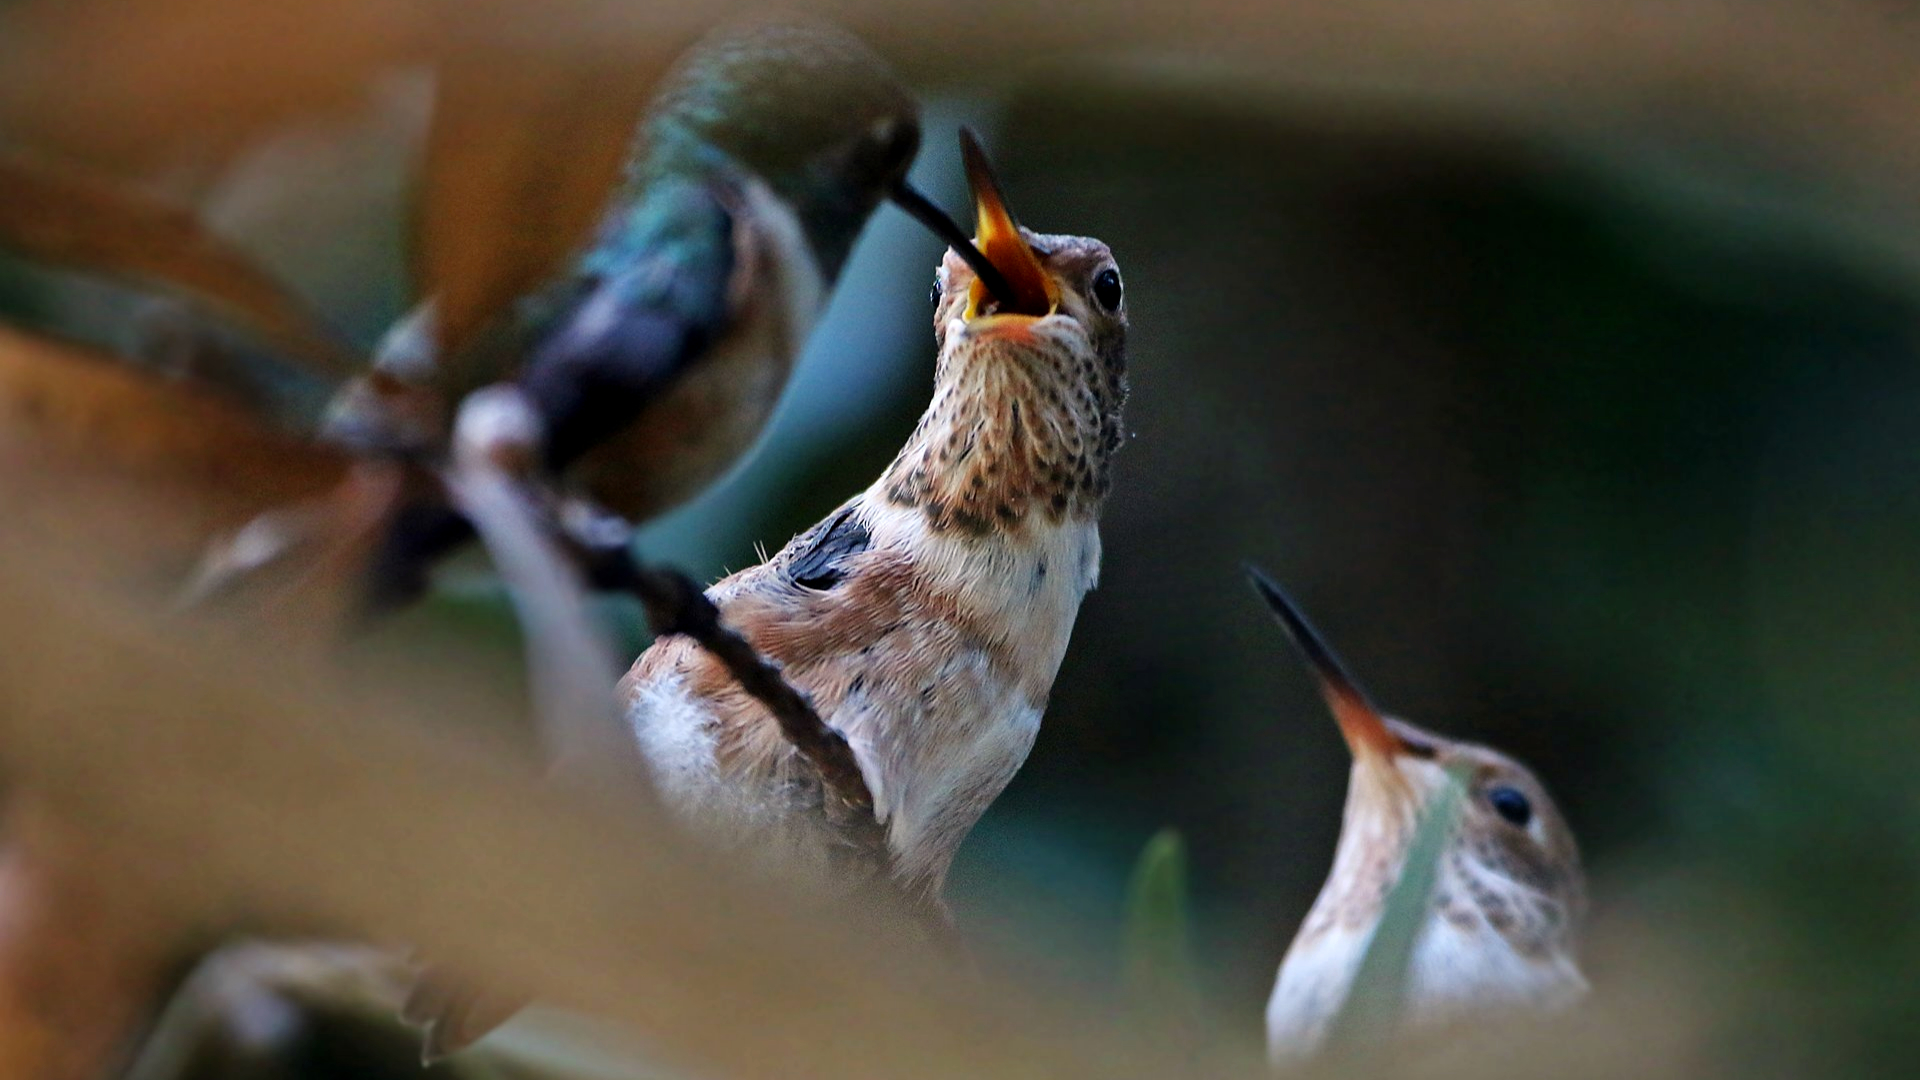 Hummingbird Fledge Update: Everything is Awesome! | Explore